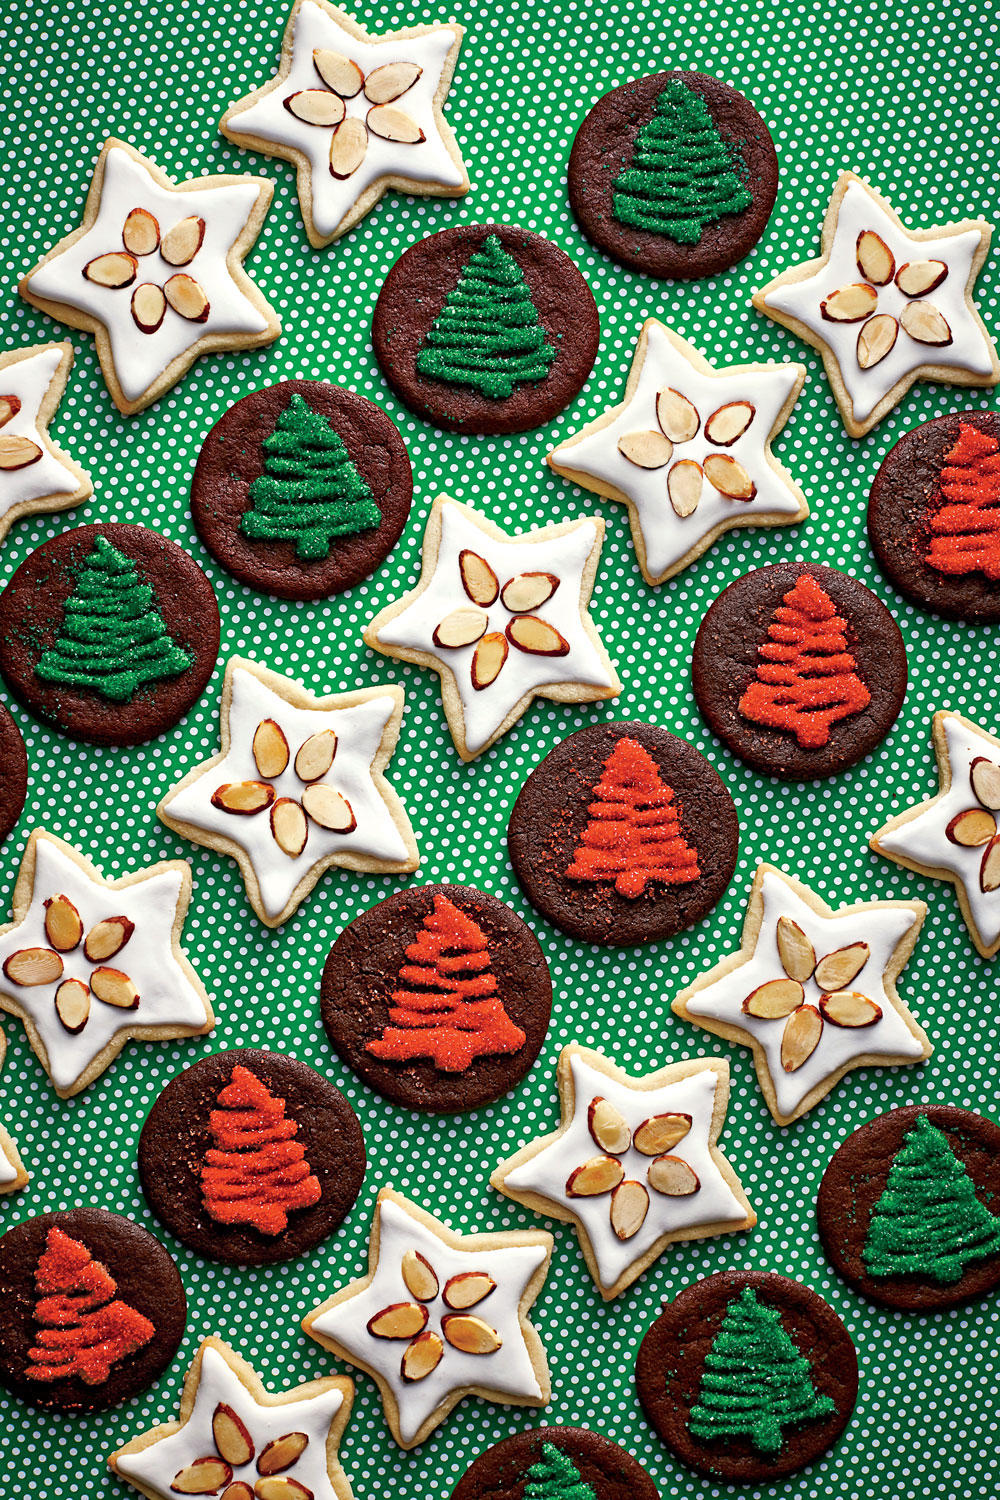 Chocolate Cutout Cookies image